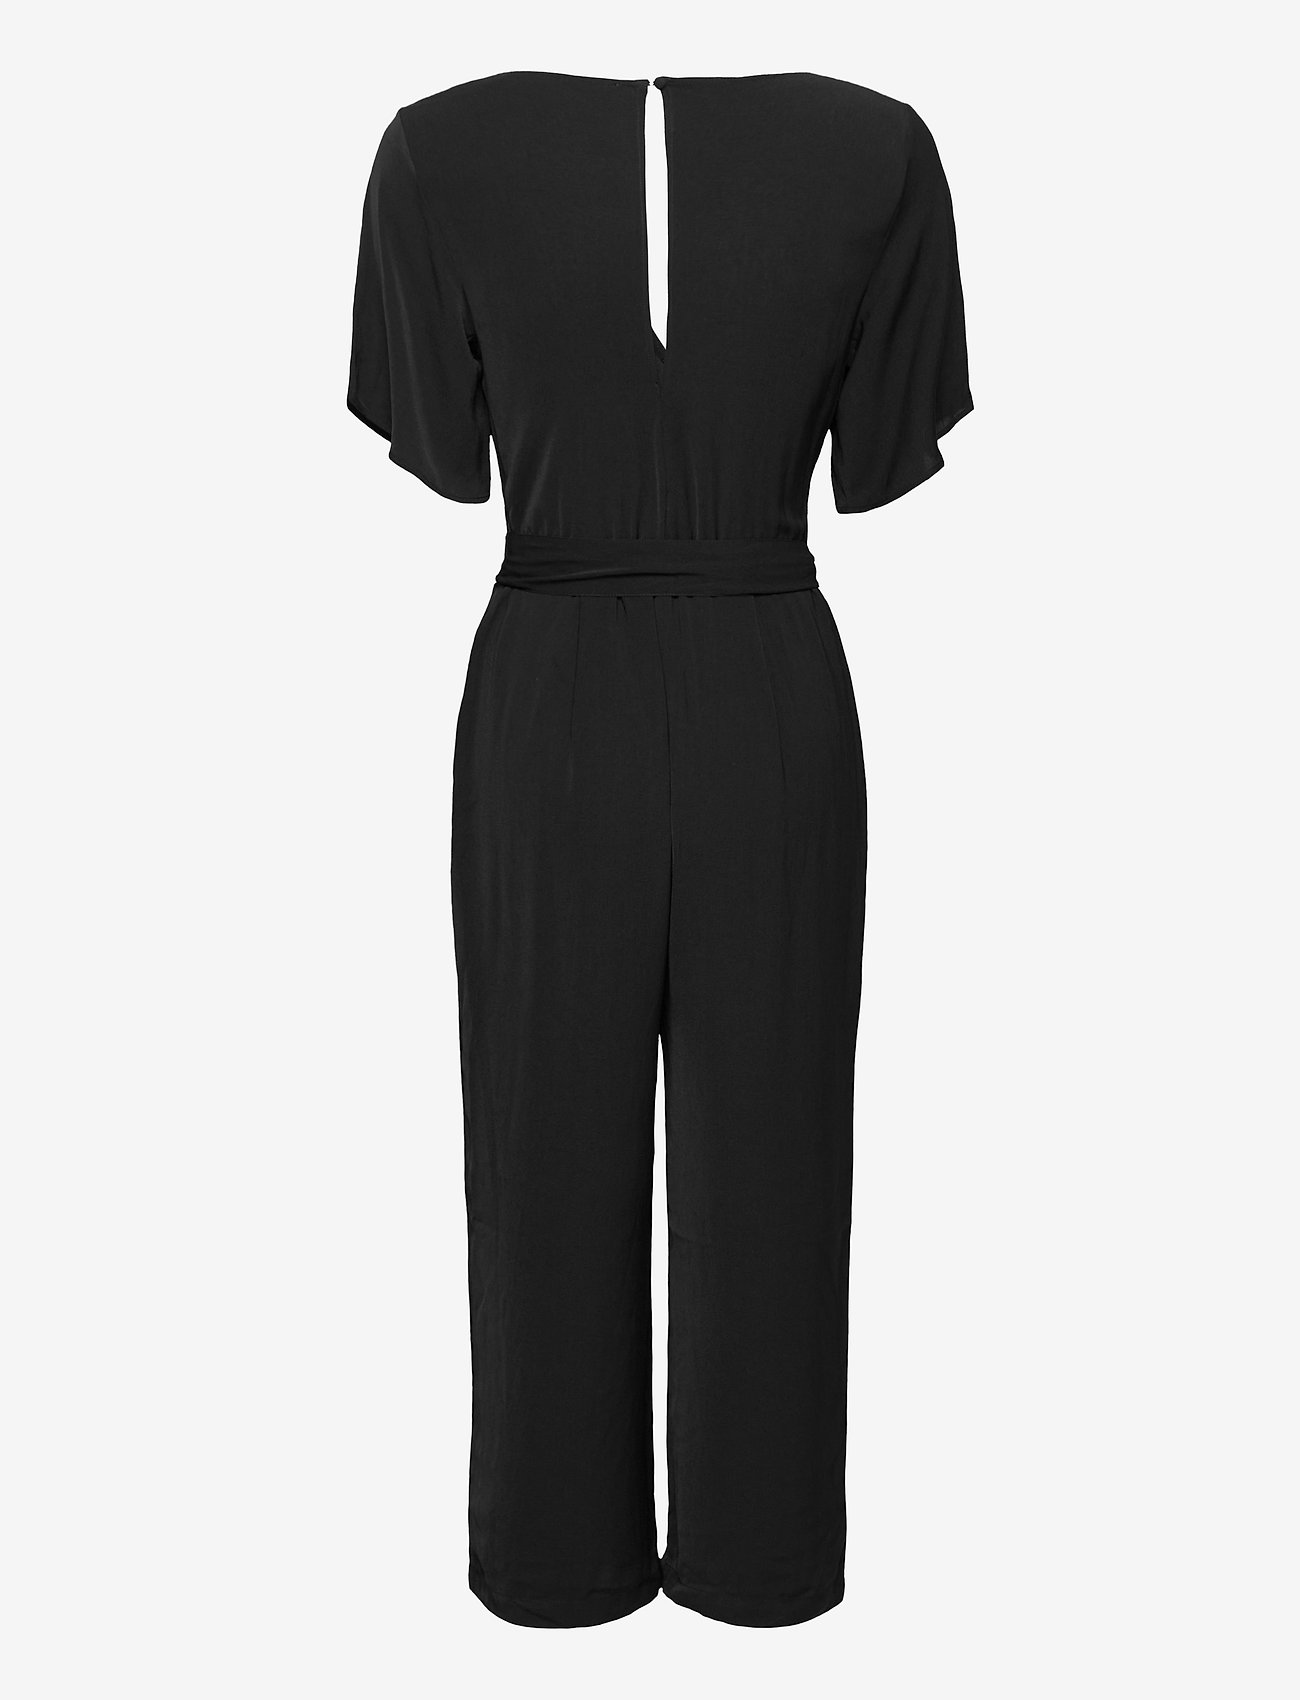 Abercrombie & Fitch - ANF WOMENS DRESSES - jumpsuits - black dd - 1